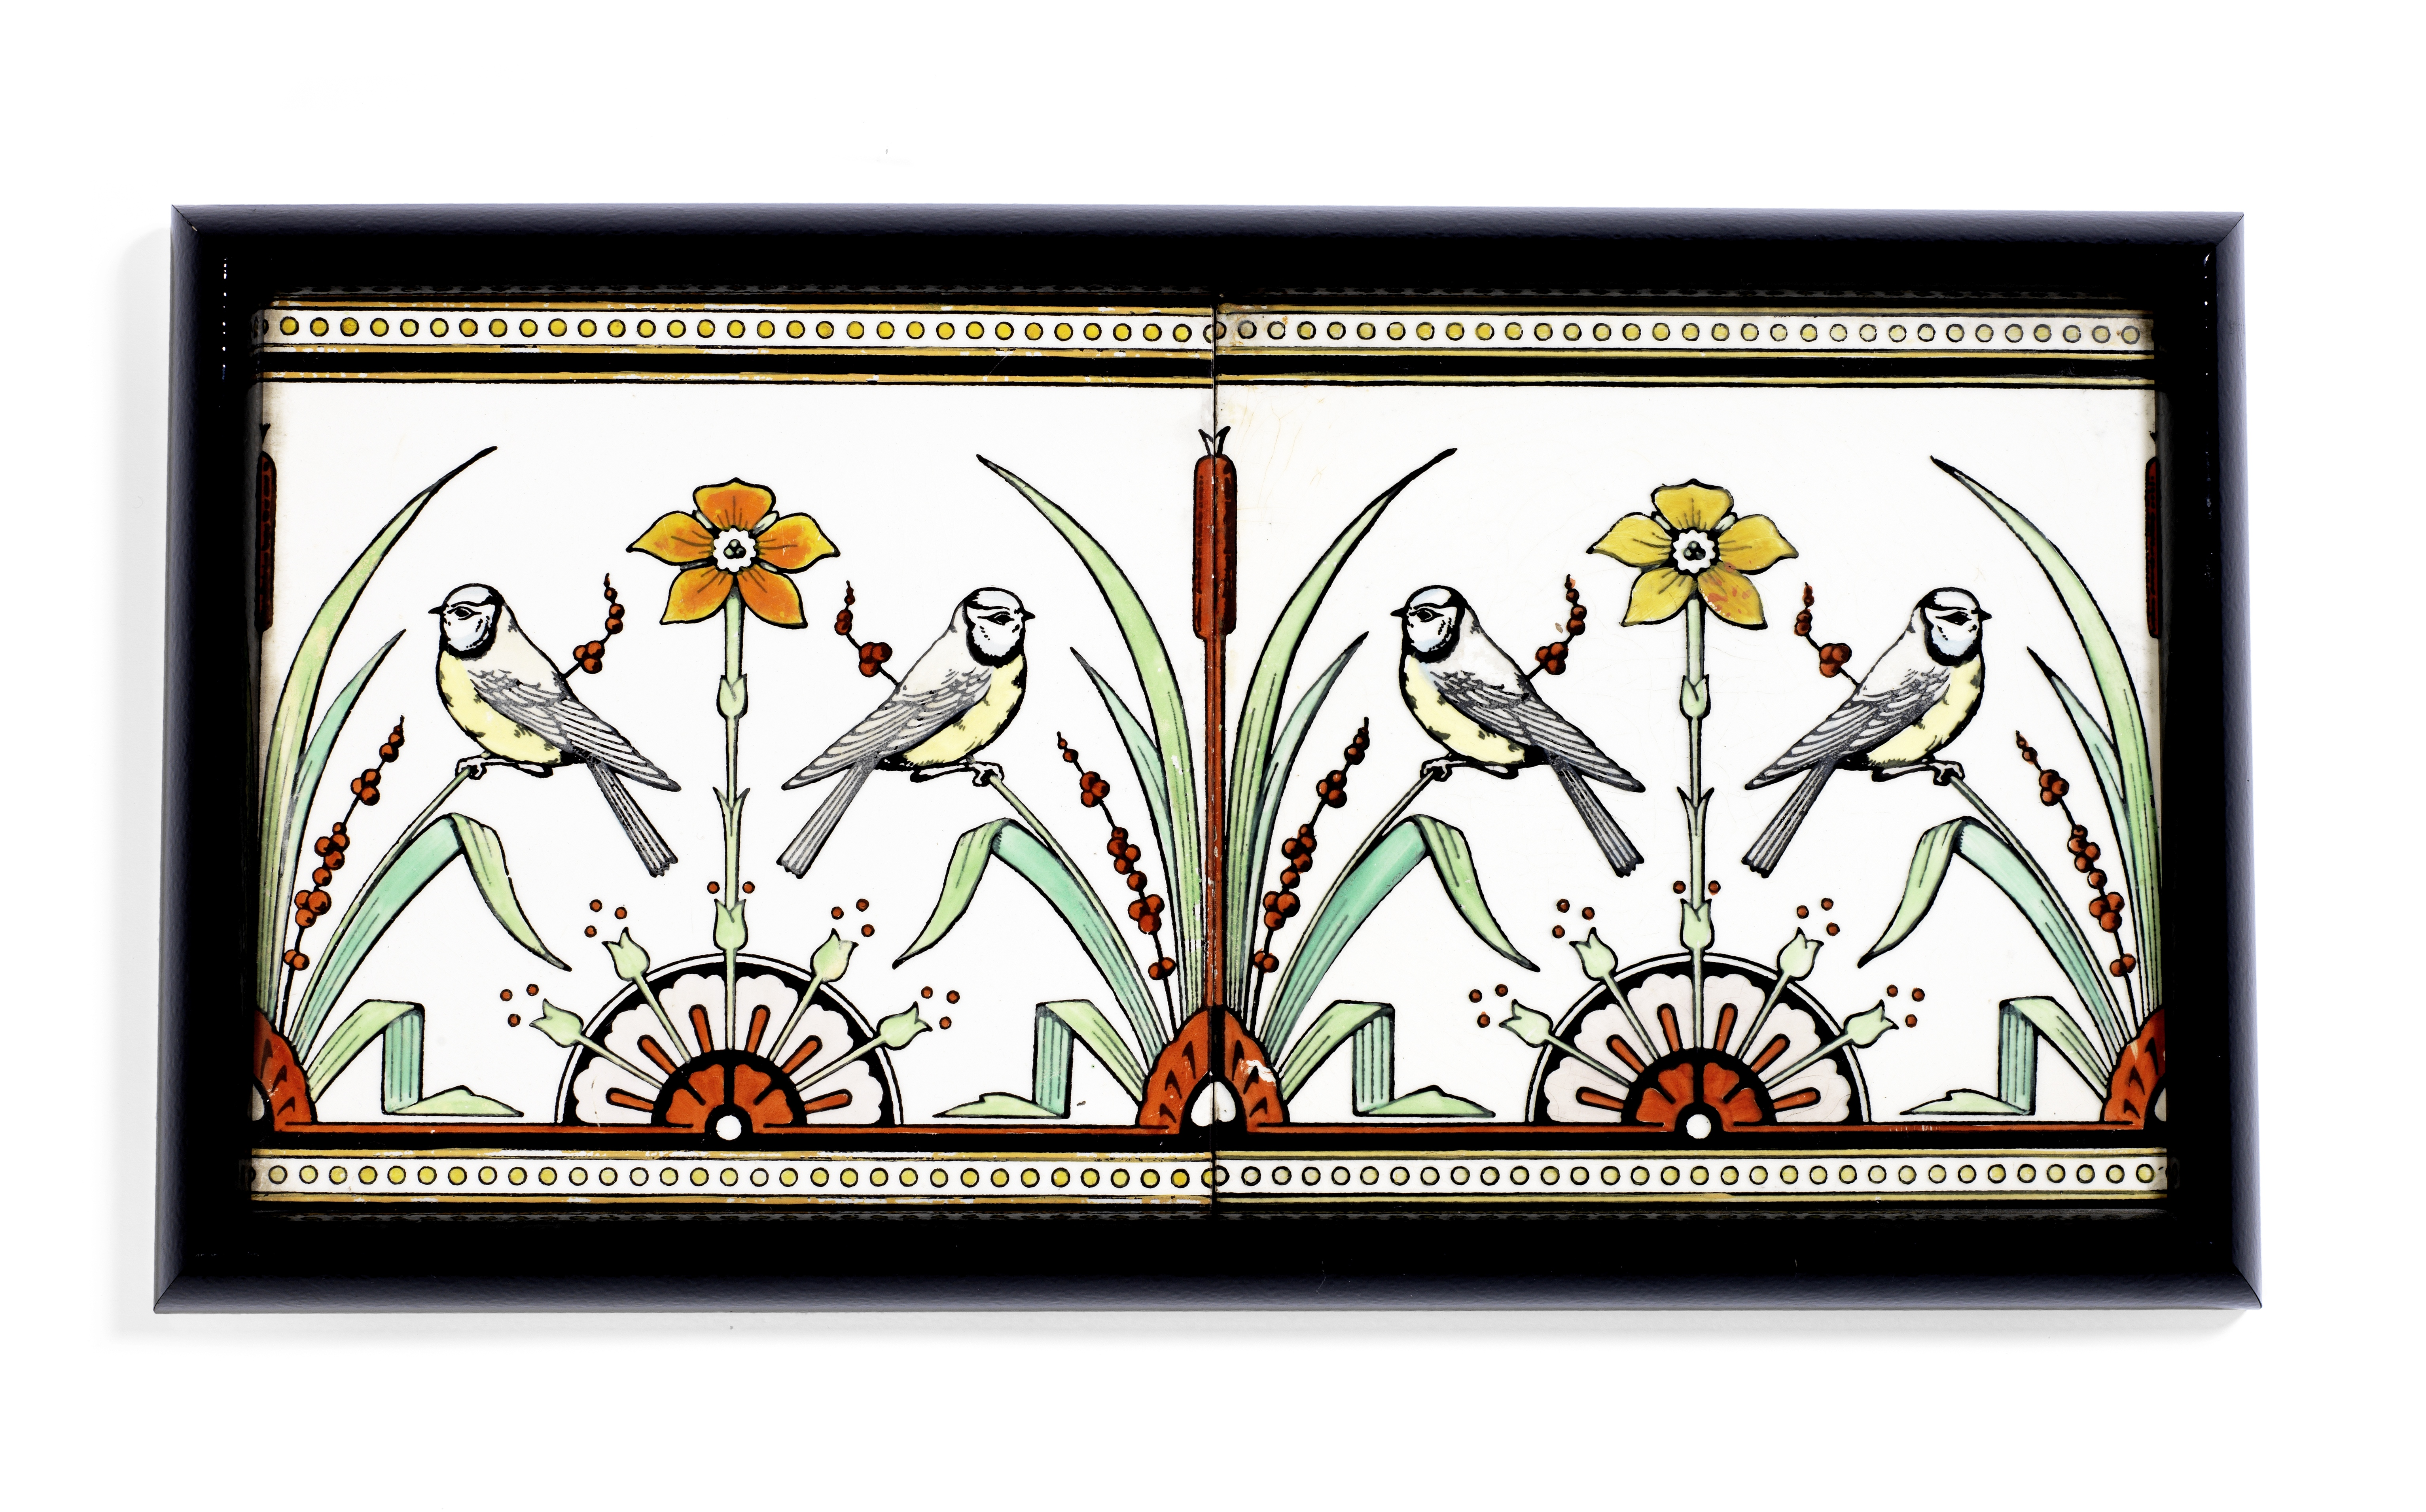 Lot 100 - Christopher Dresser (British, 1834-1904) for Mintons China Works Two Framed Ceramic Tiles, circa ...